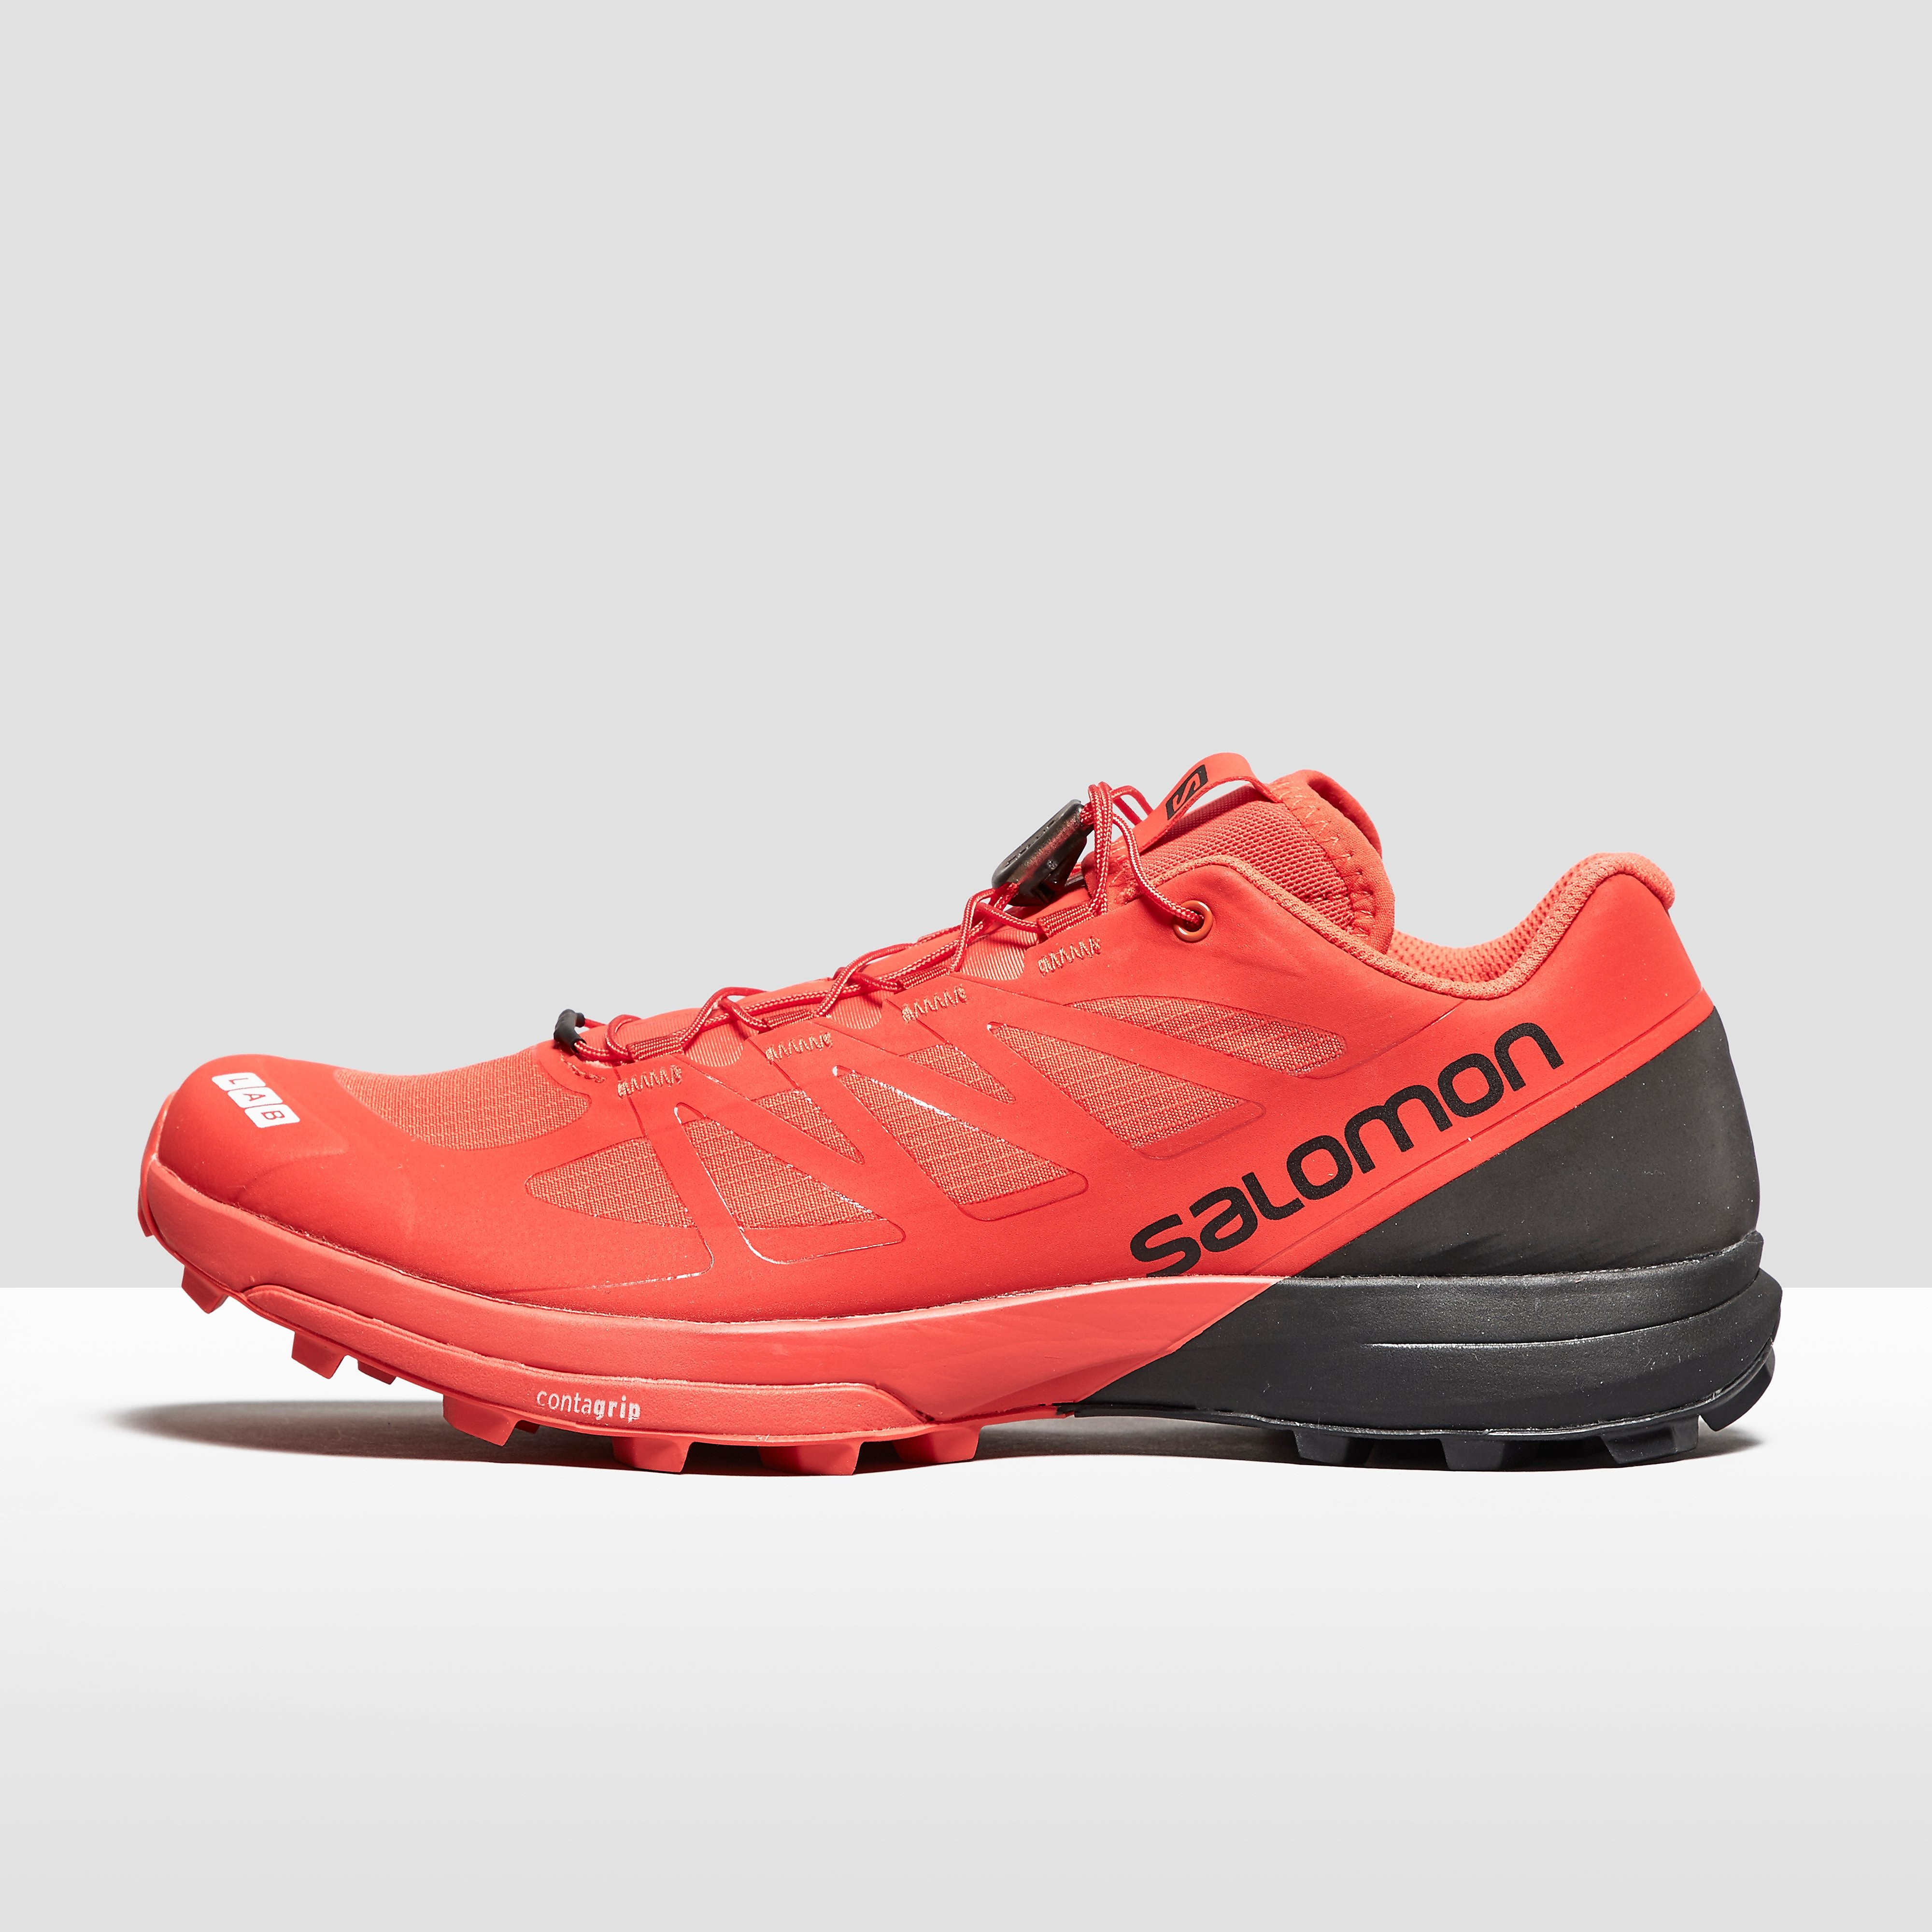 Salomon Men's S-Lab Sense 6 SG Shoes